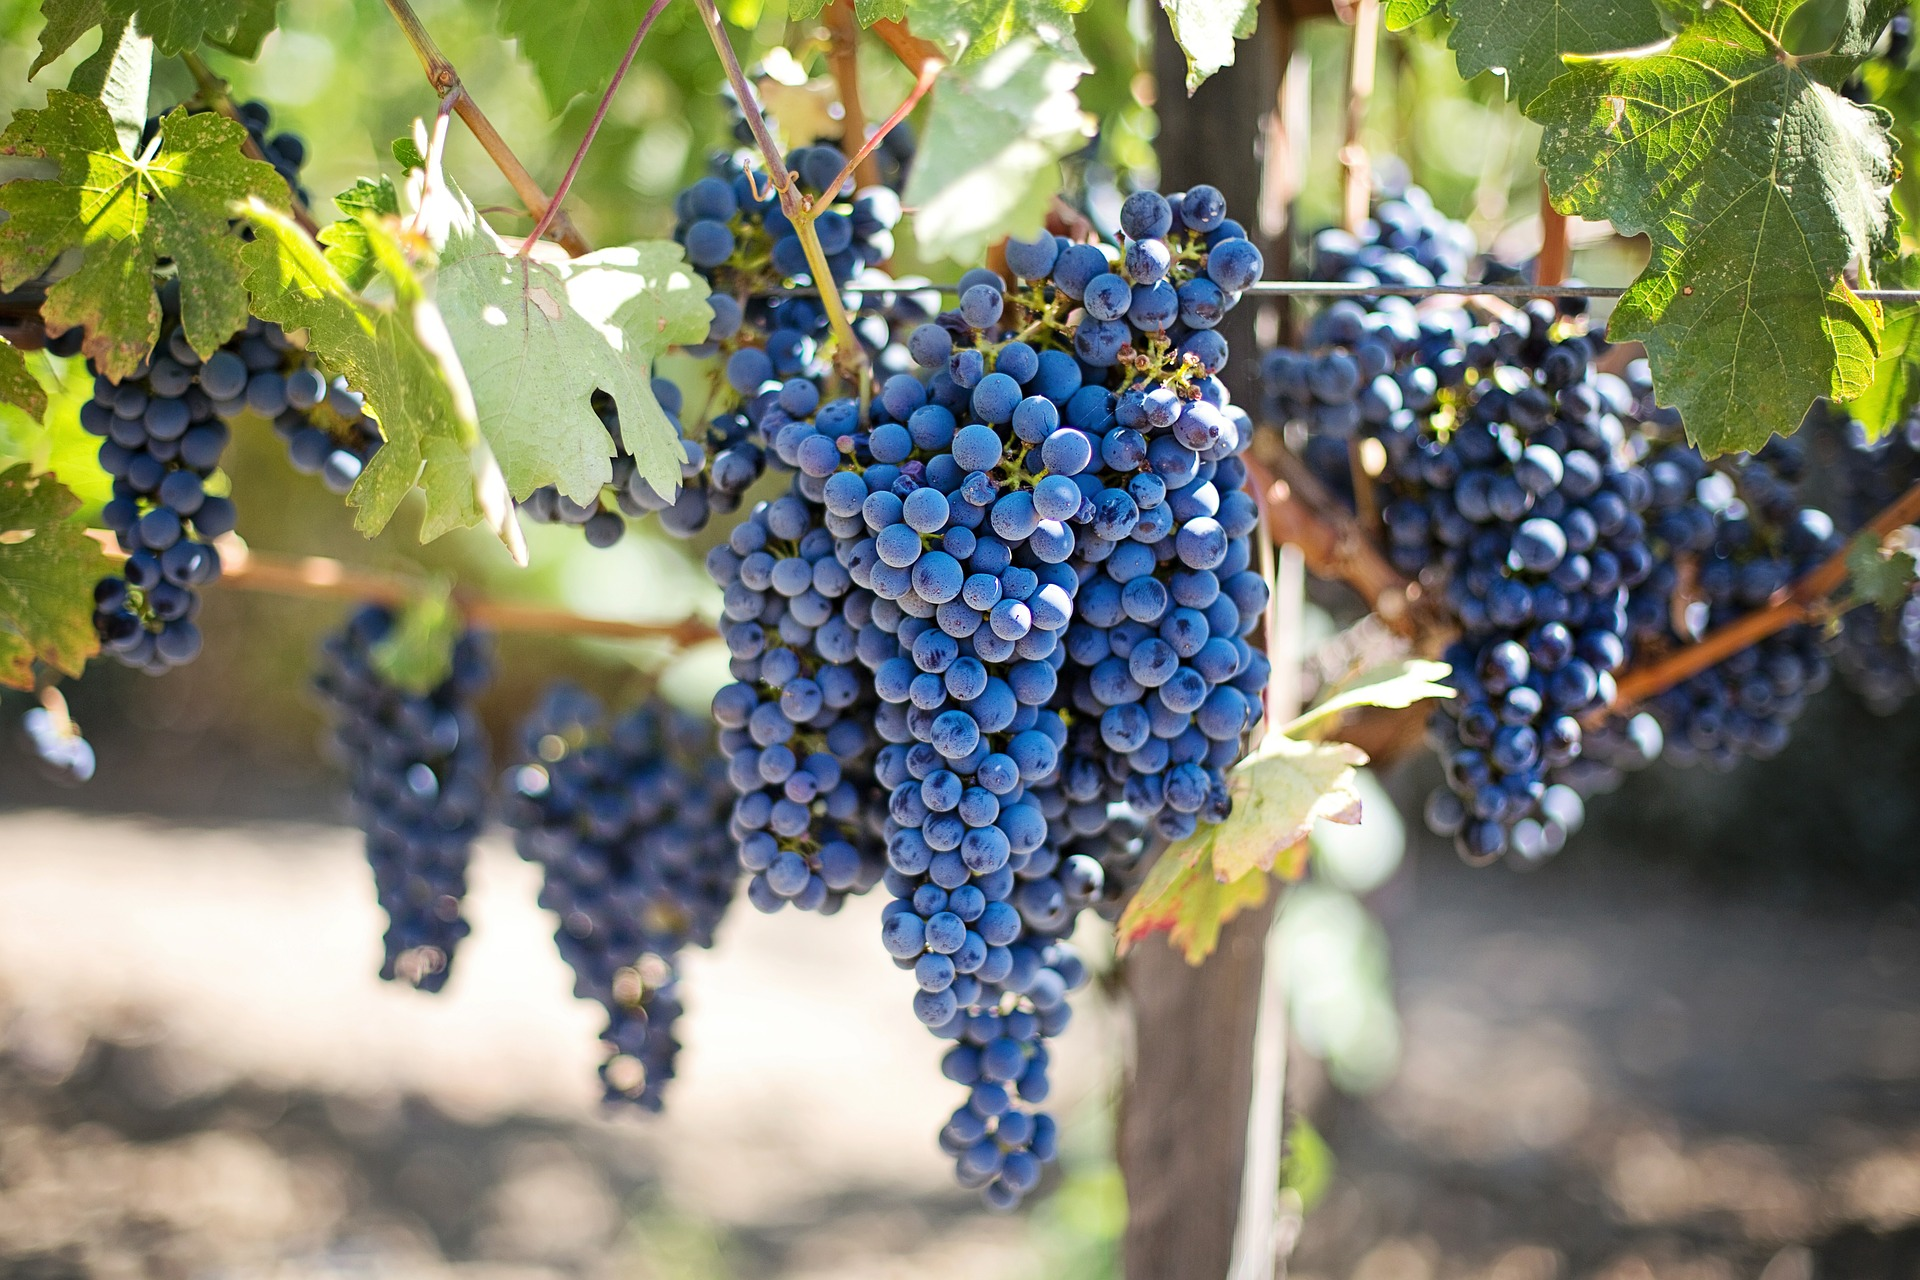 Pixabay - grapes